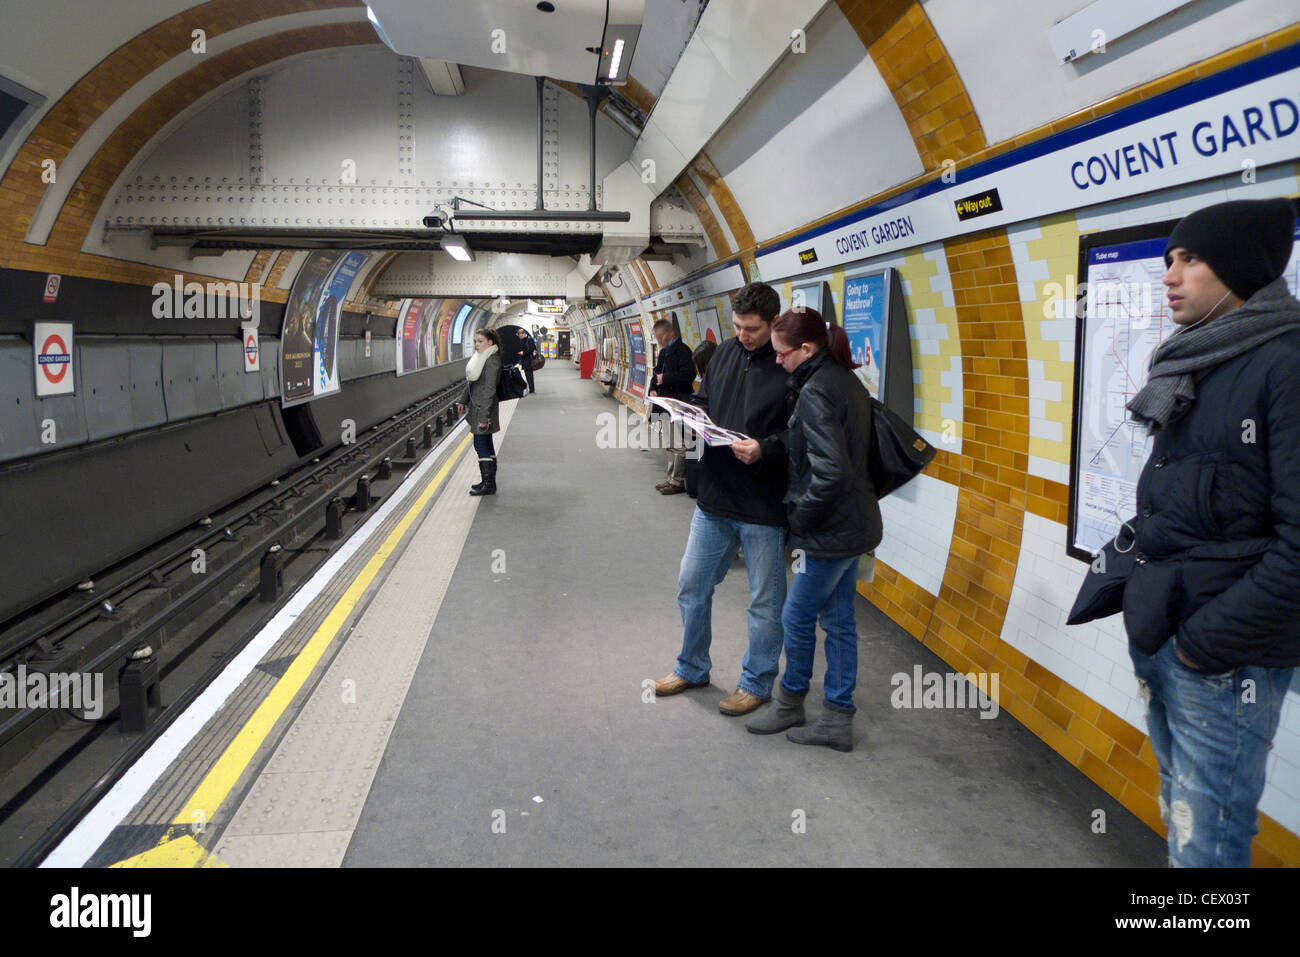 Passengers waiting for underground train on the Piccadilly line platform at Covent Garden Station London England - Stock Image